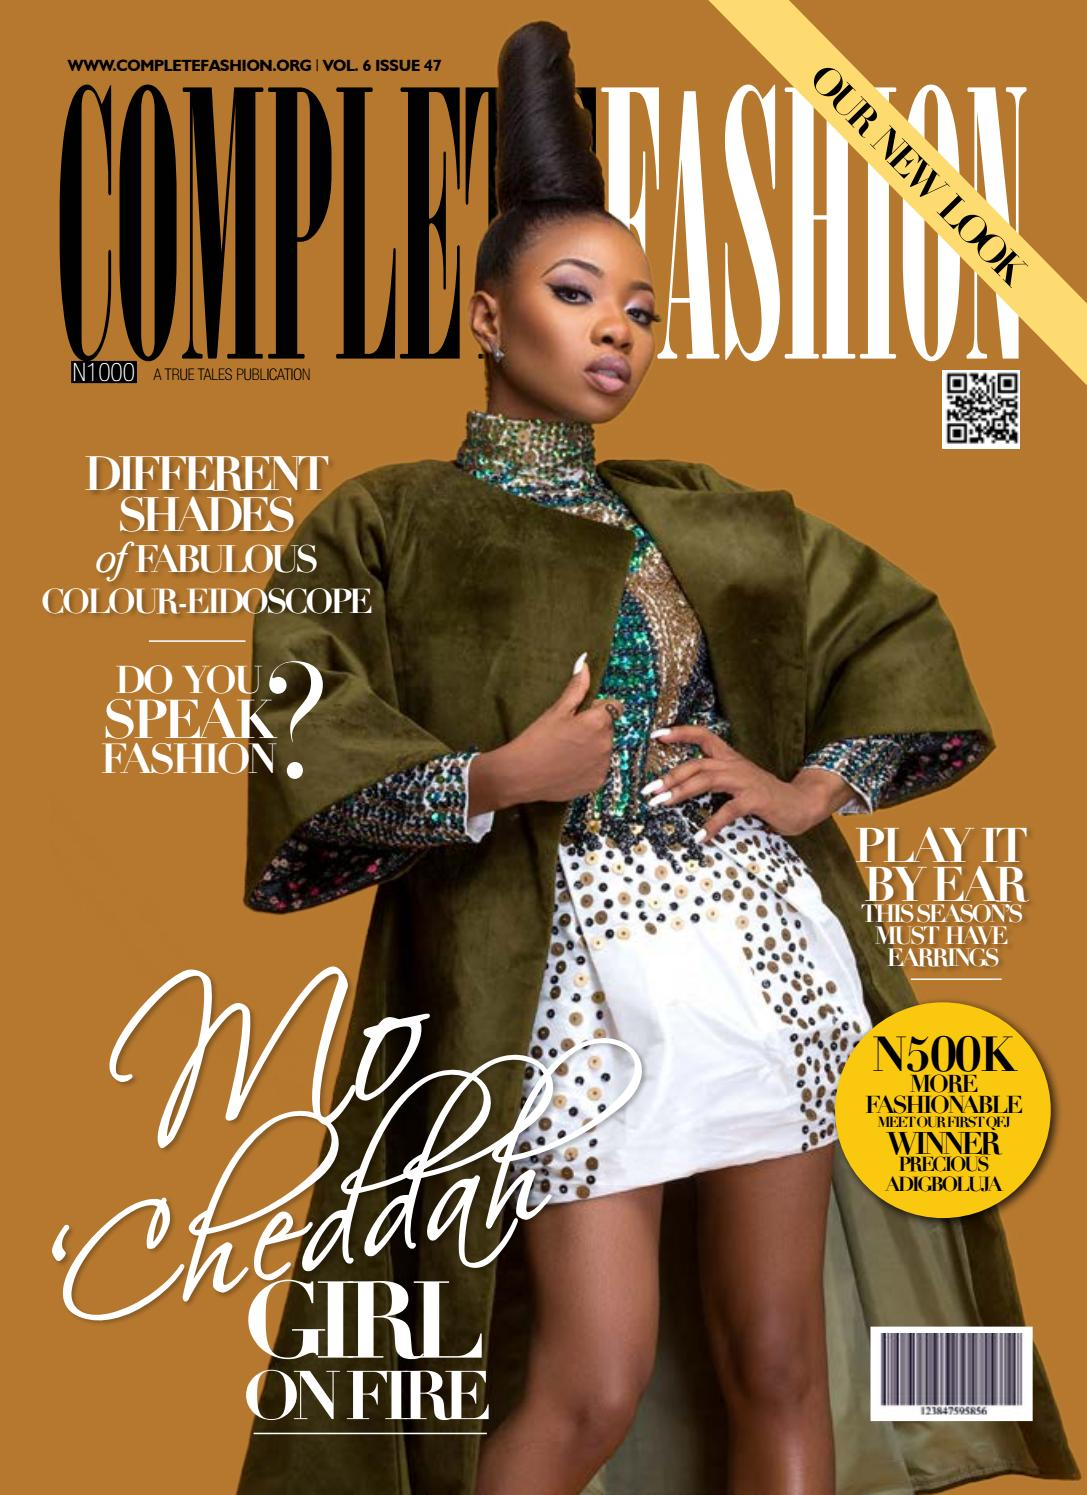 Complete Fashion Vol 6 Issue 47 By Complete Fashion Issuu